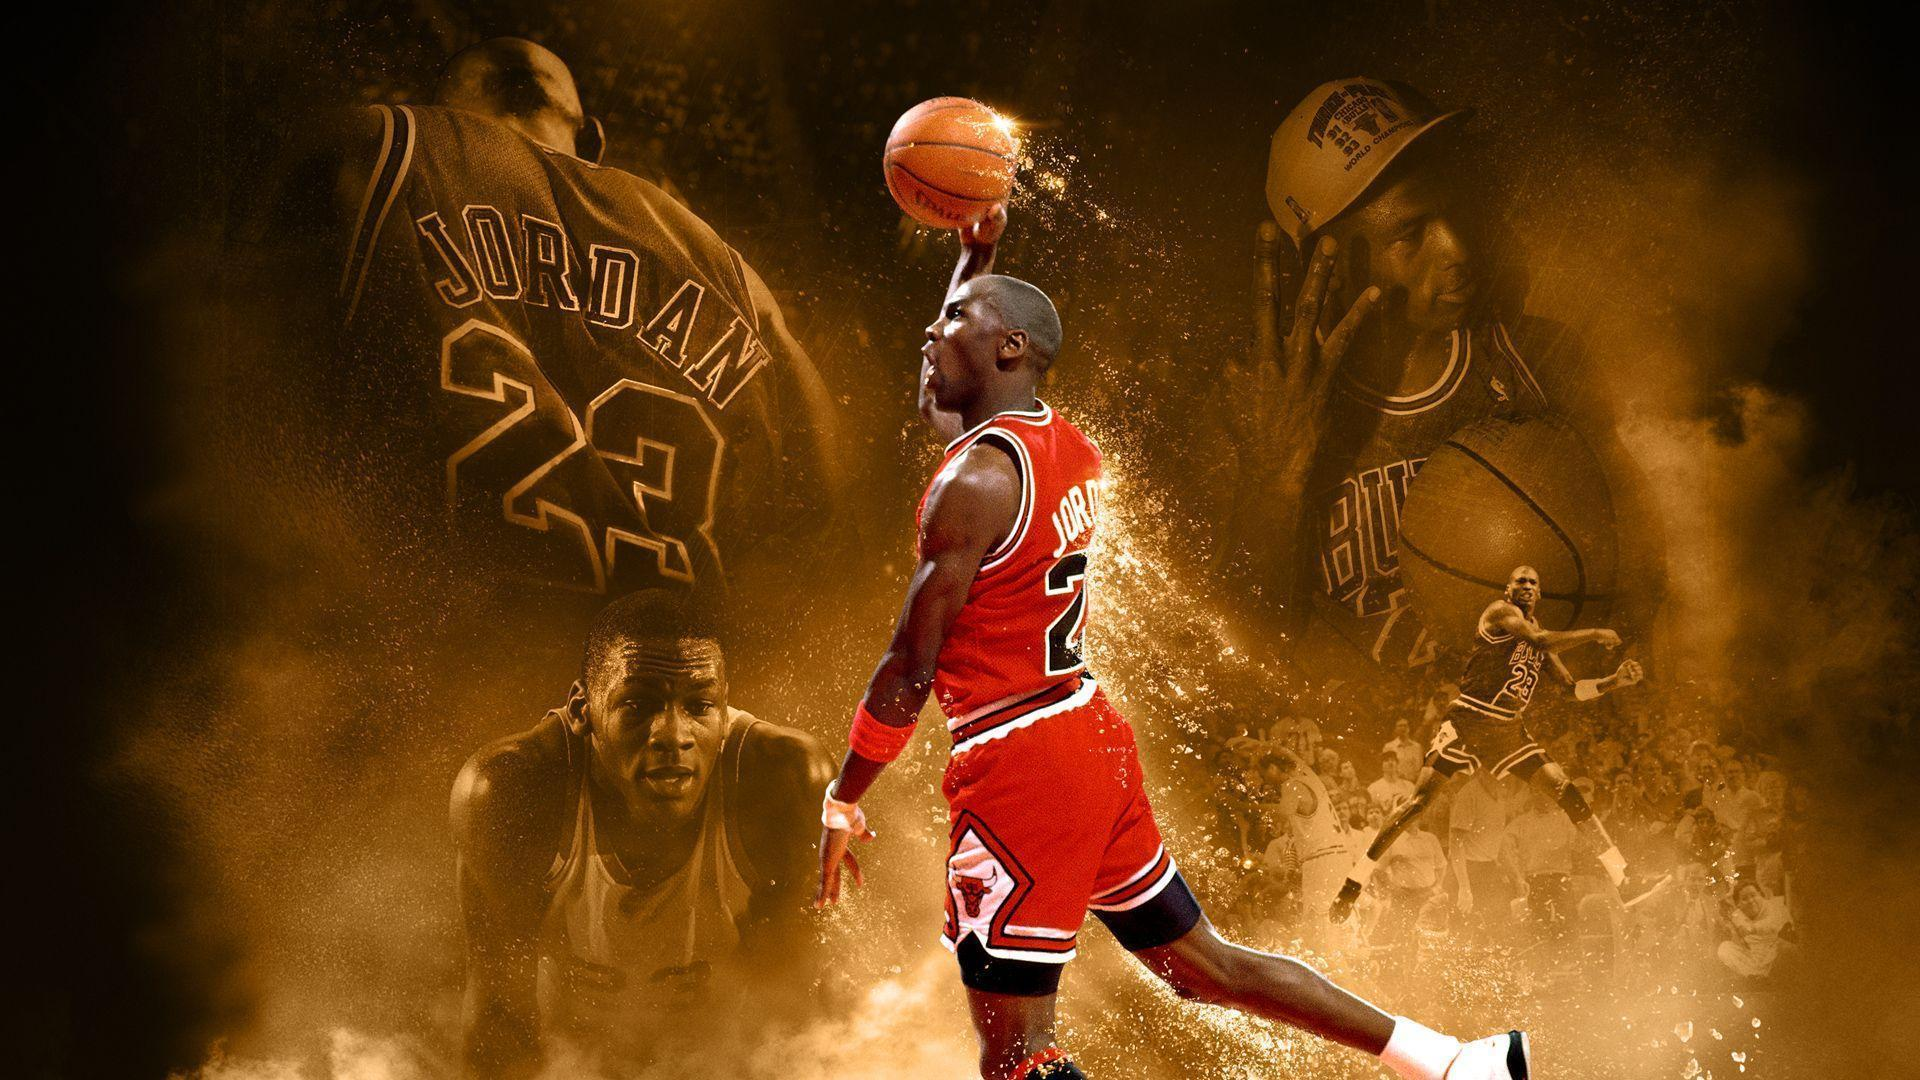 The Best NBA backgrounds For Your Computer